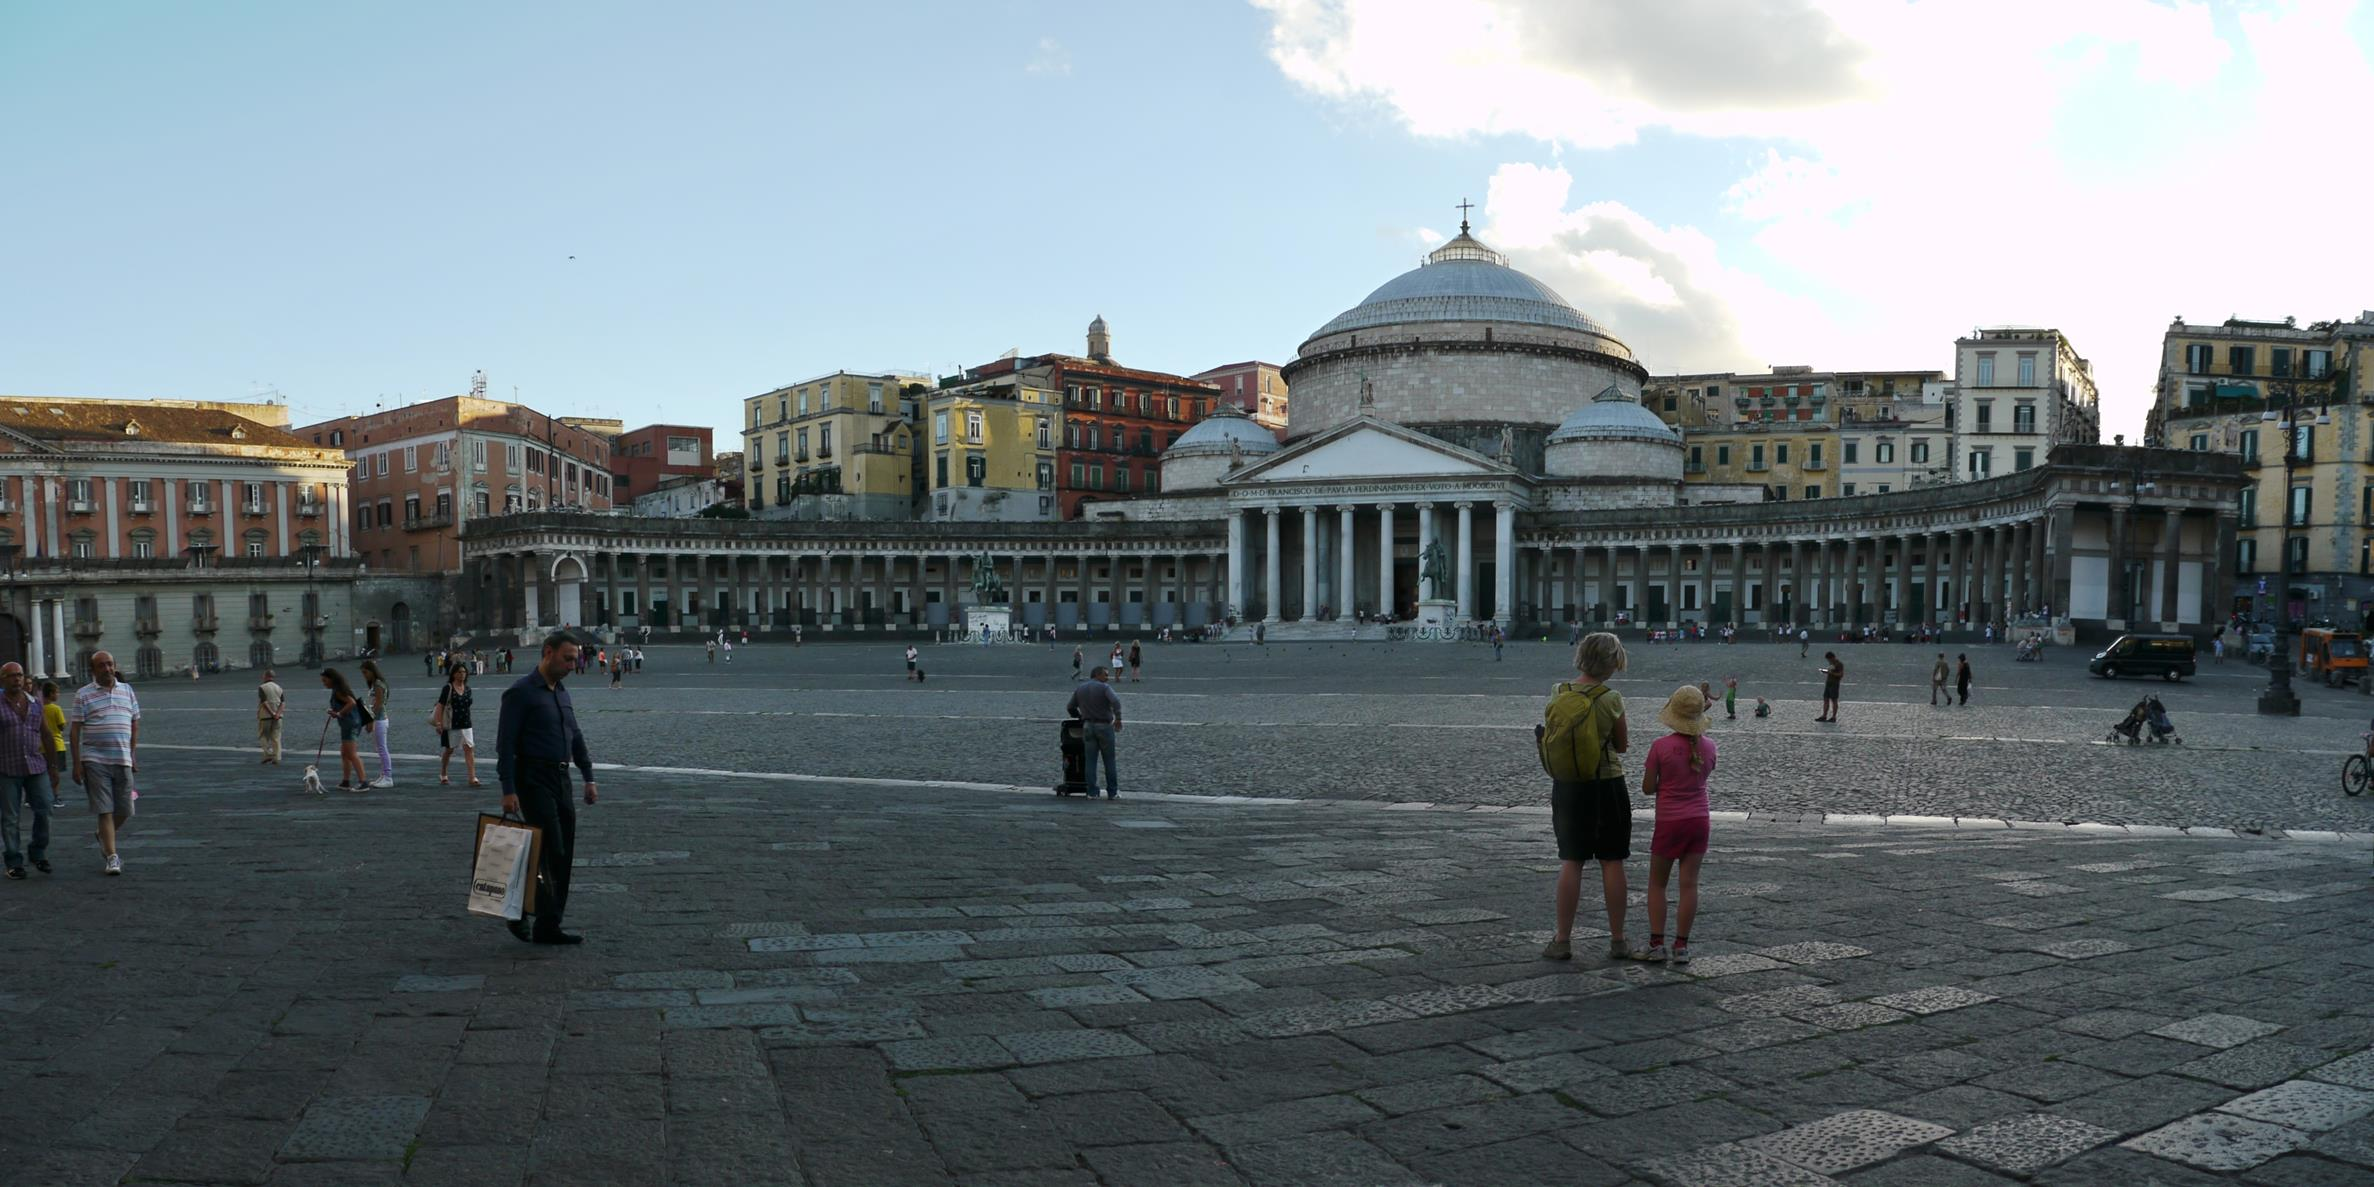 With only one hour in Naples, we visited Piazza del Plebiscito, a respite from crazy Naples traffic